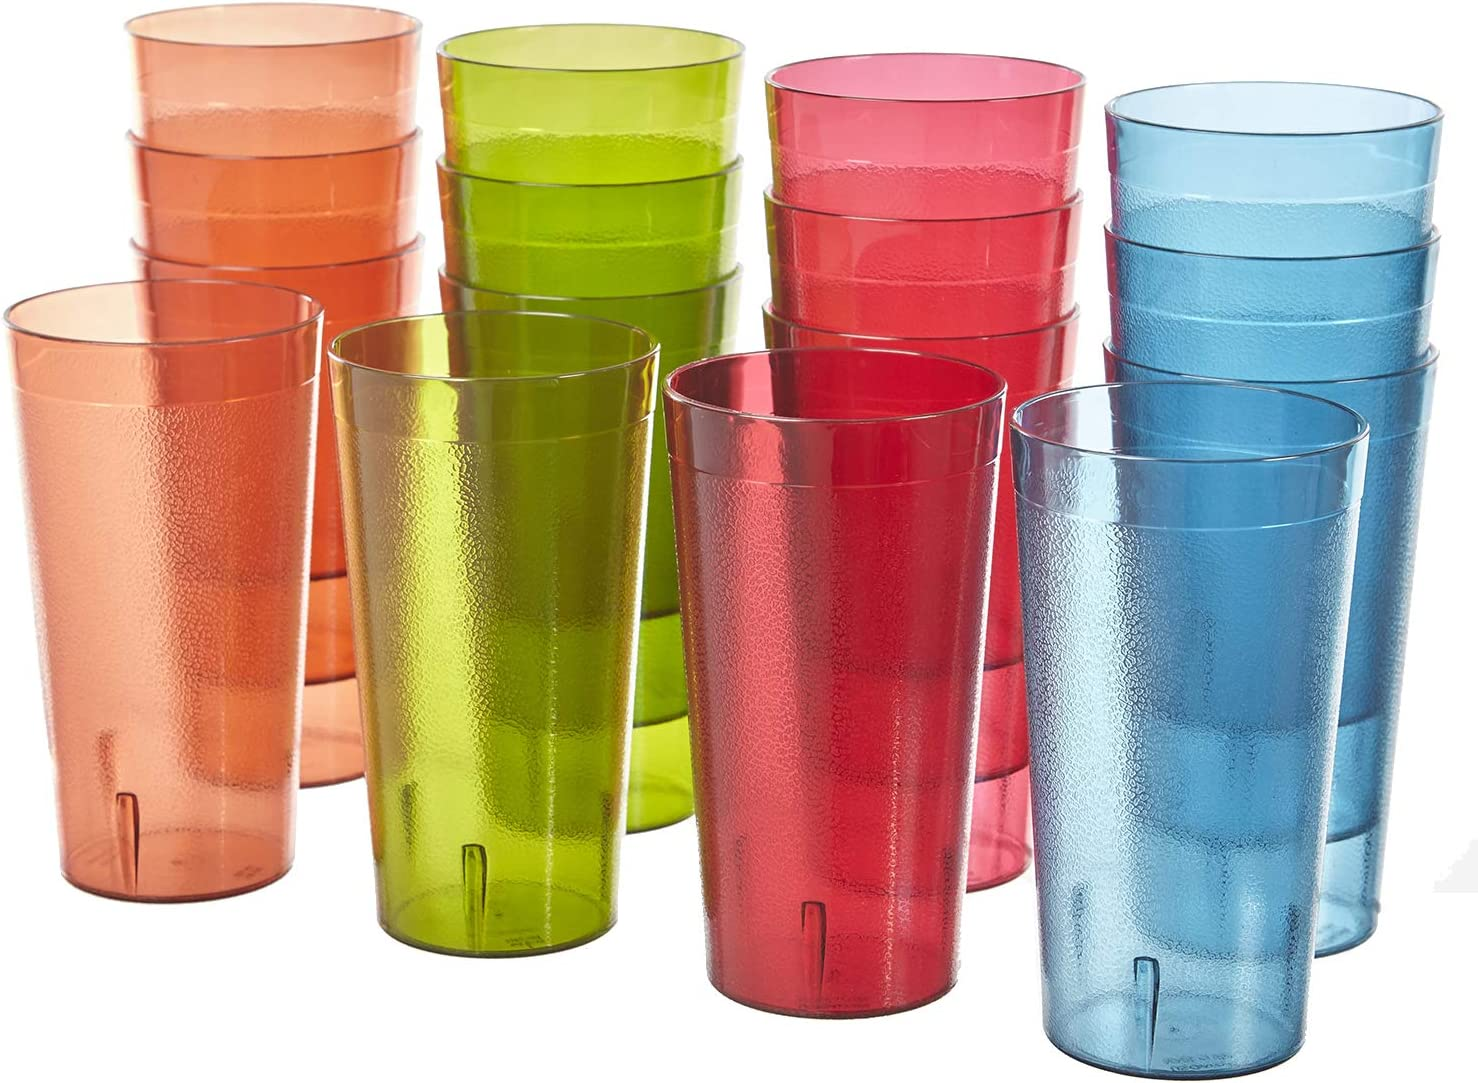 Cafe Break Resistant Plastic 20oz Restaurant Quality Beverage Tumblers Set Of 16 In 4 Assorted Colors Mixed Drinkware Sets